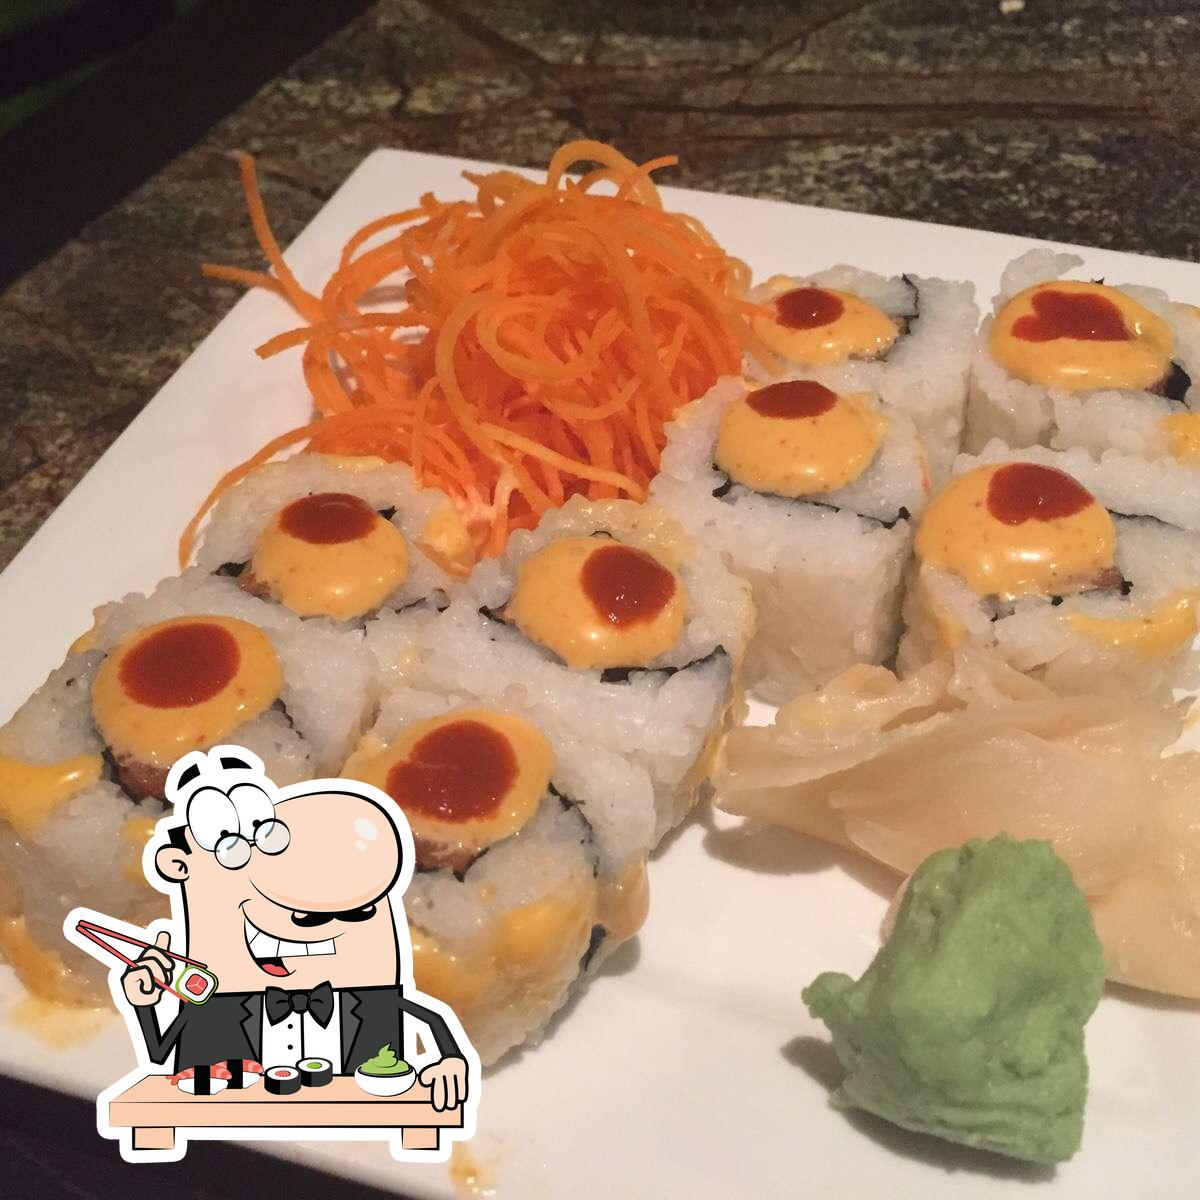 Sushi is a famous food item that originates from Japan